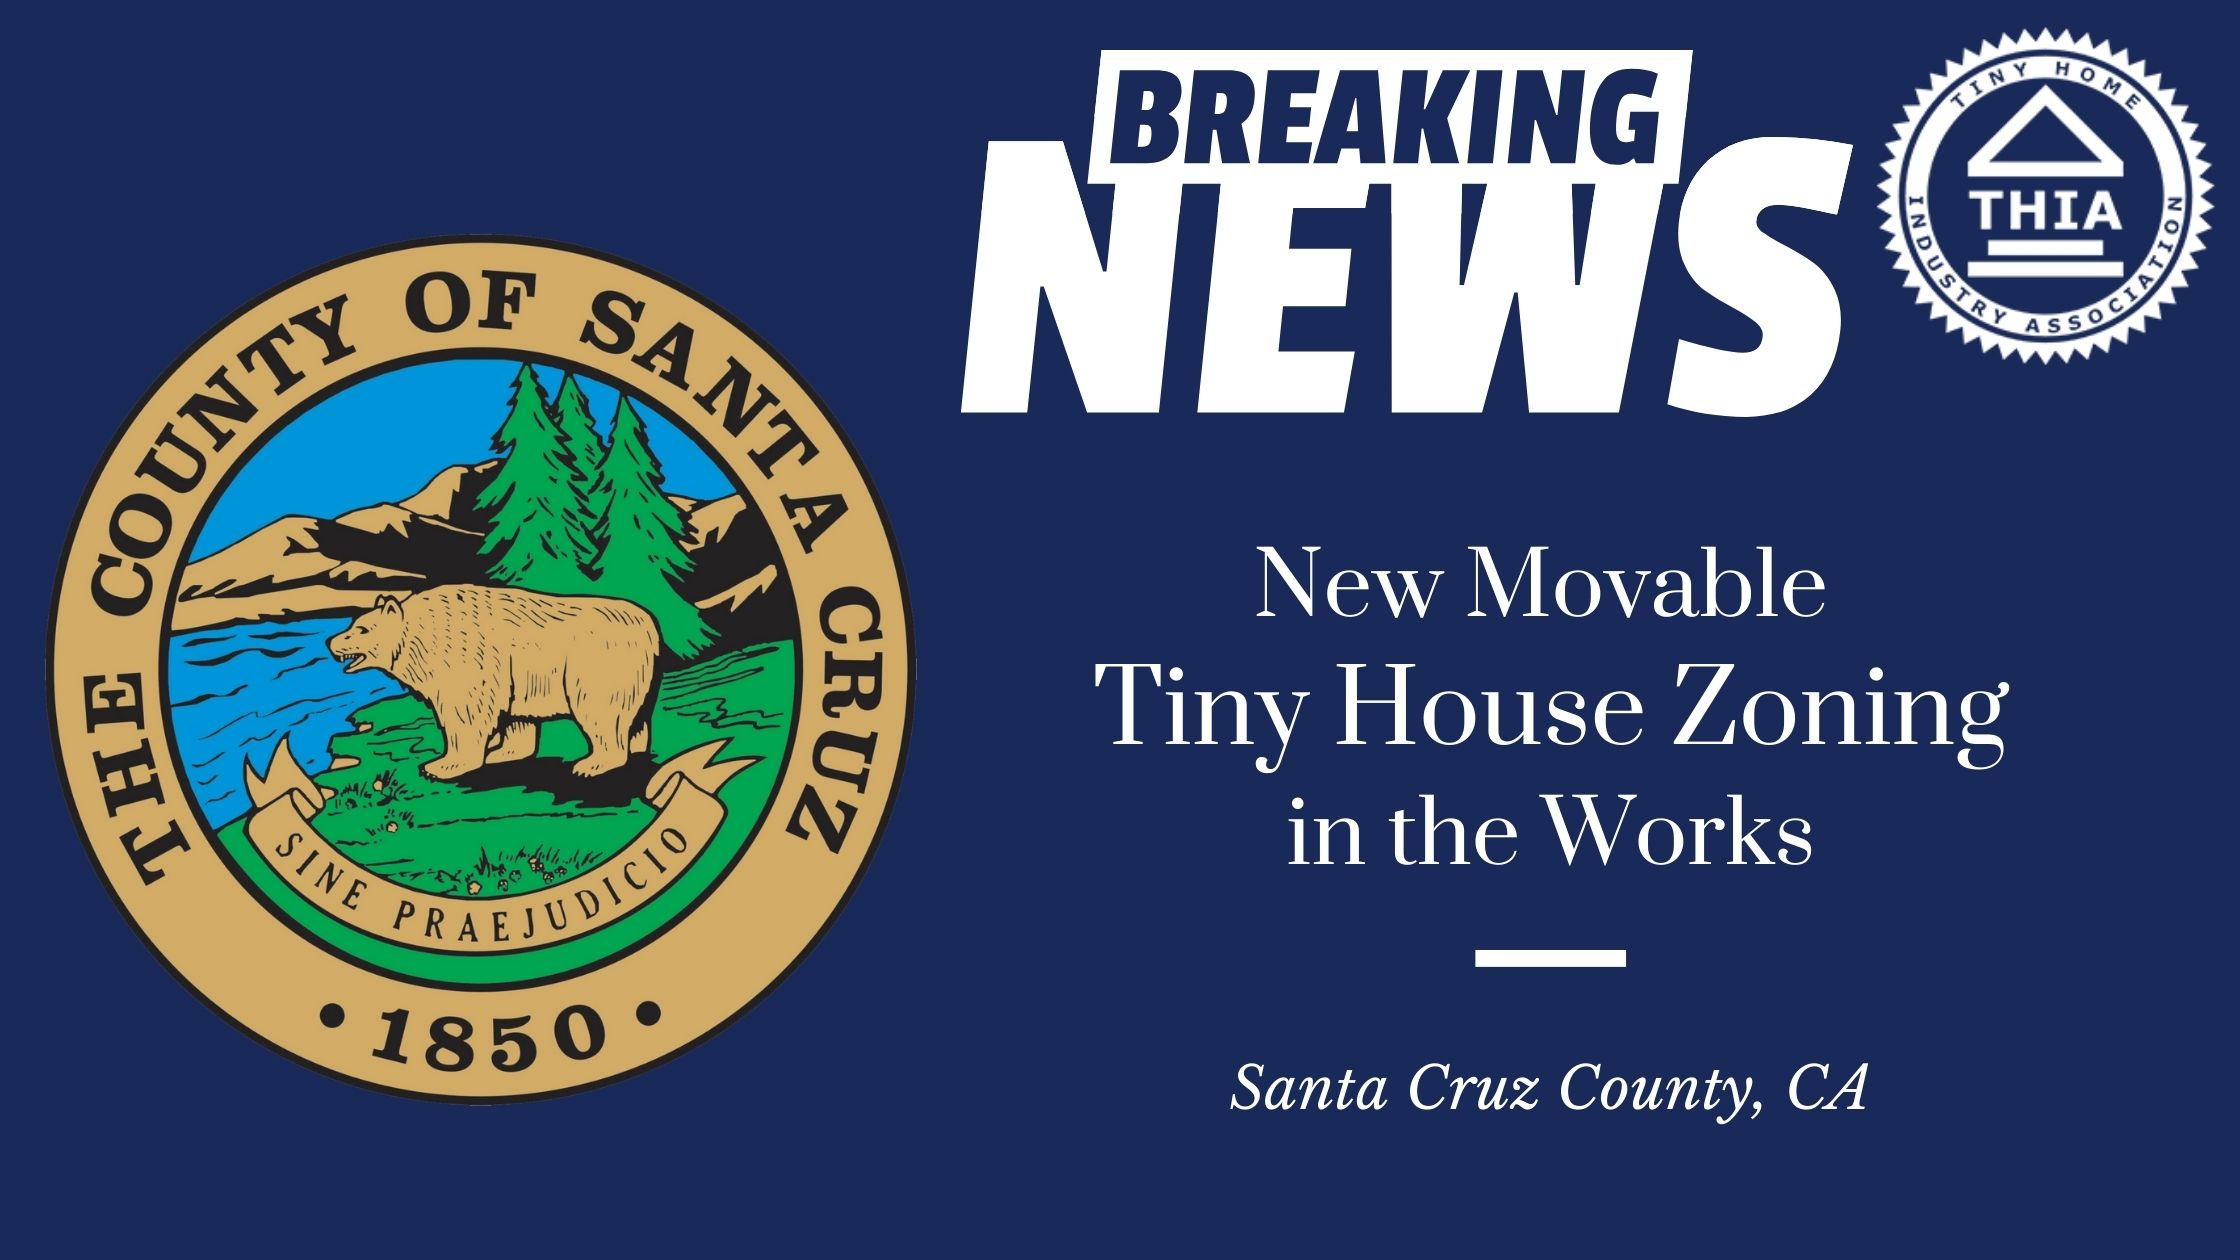 Extensive Tiny House Ordinance Proposed in Santa Cruz County, CA